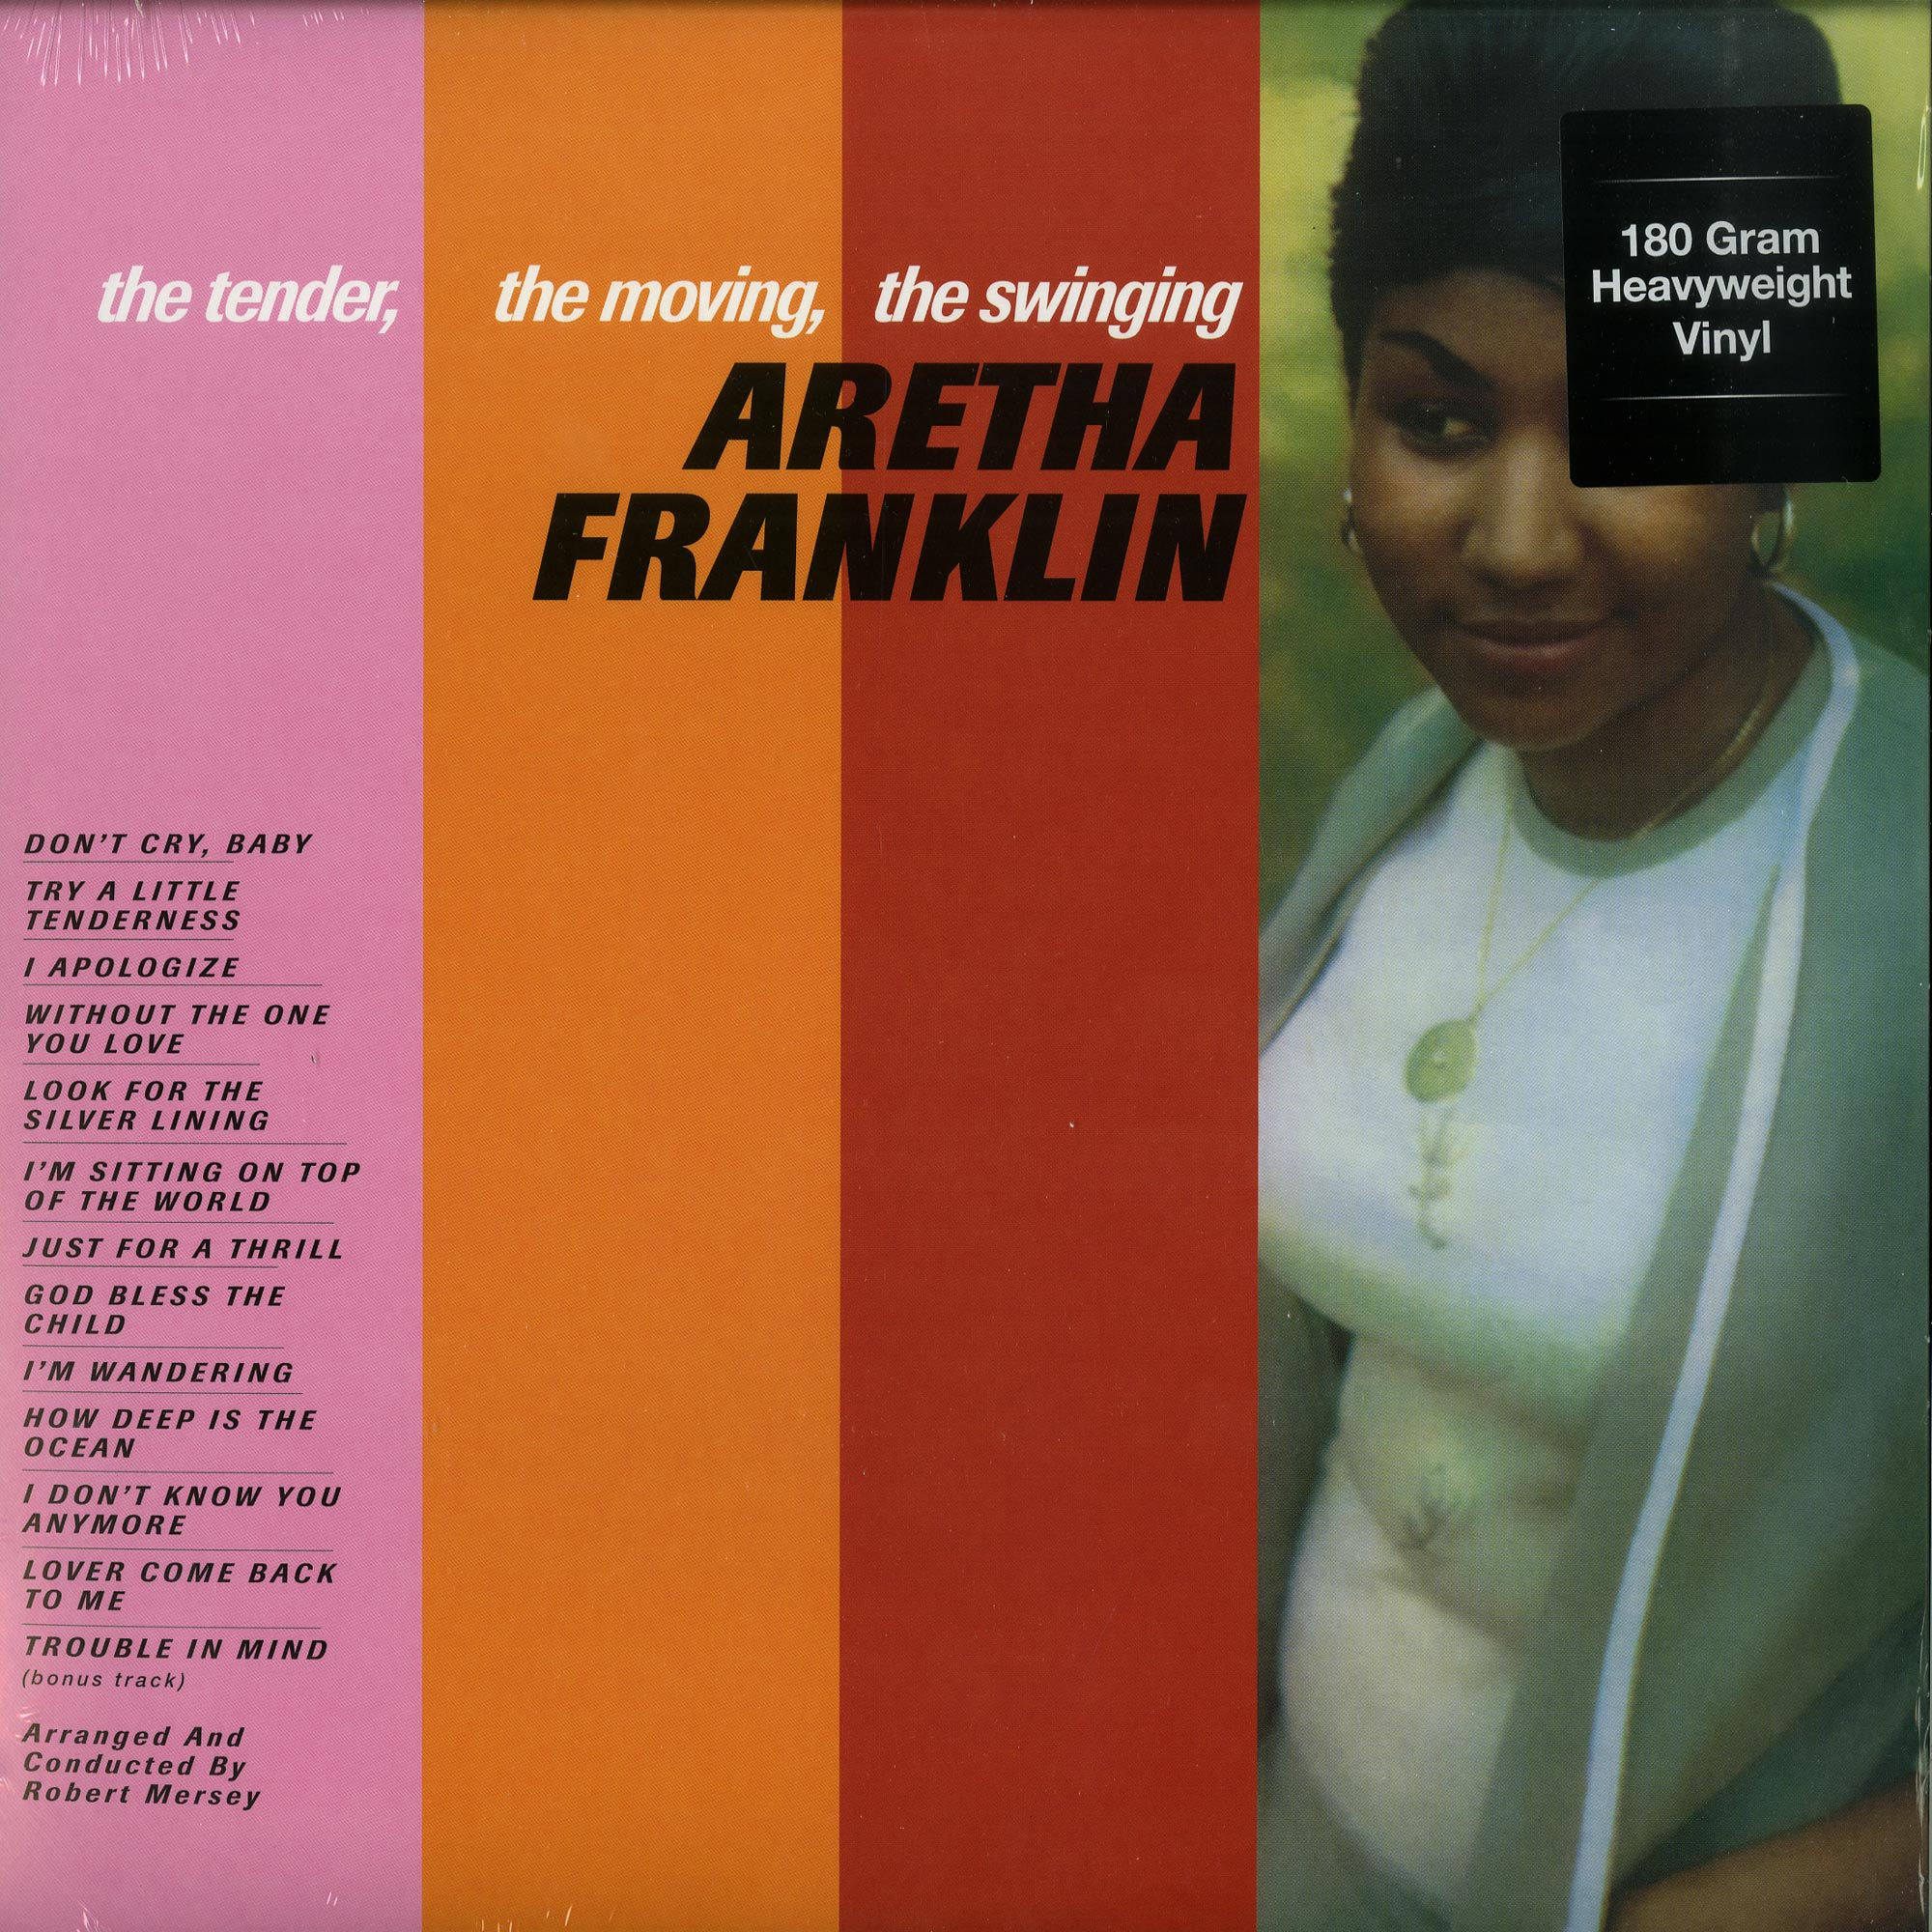 Aretha Franklin - THE TENDER, THE MOVING, THE SWINGING